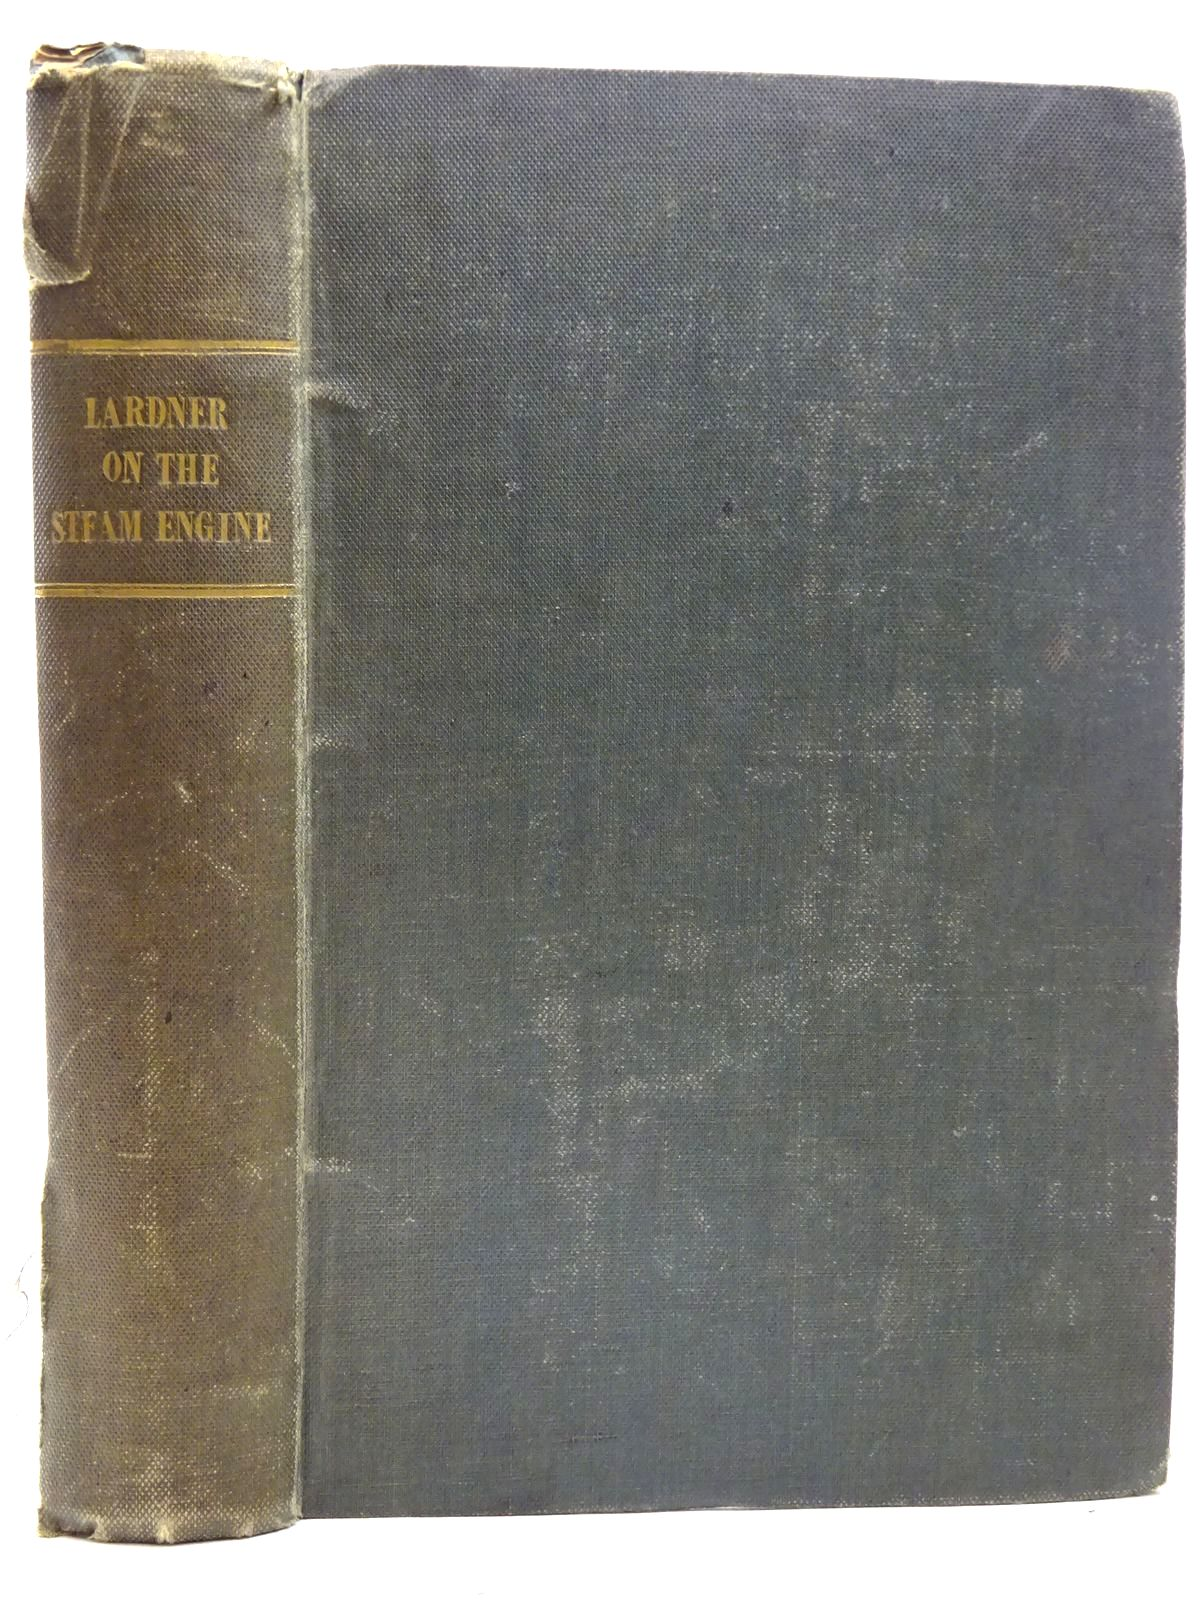 Photo of THE STEAM ENGINE EXPLAINED AND ILLUSTRATED written by Lardner, Dionysius published by Taylor and Walton (STOCK CODE: 2126562)  for sale by Stella & Rose's Books